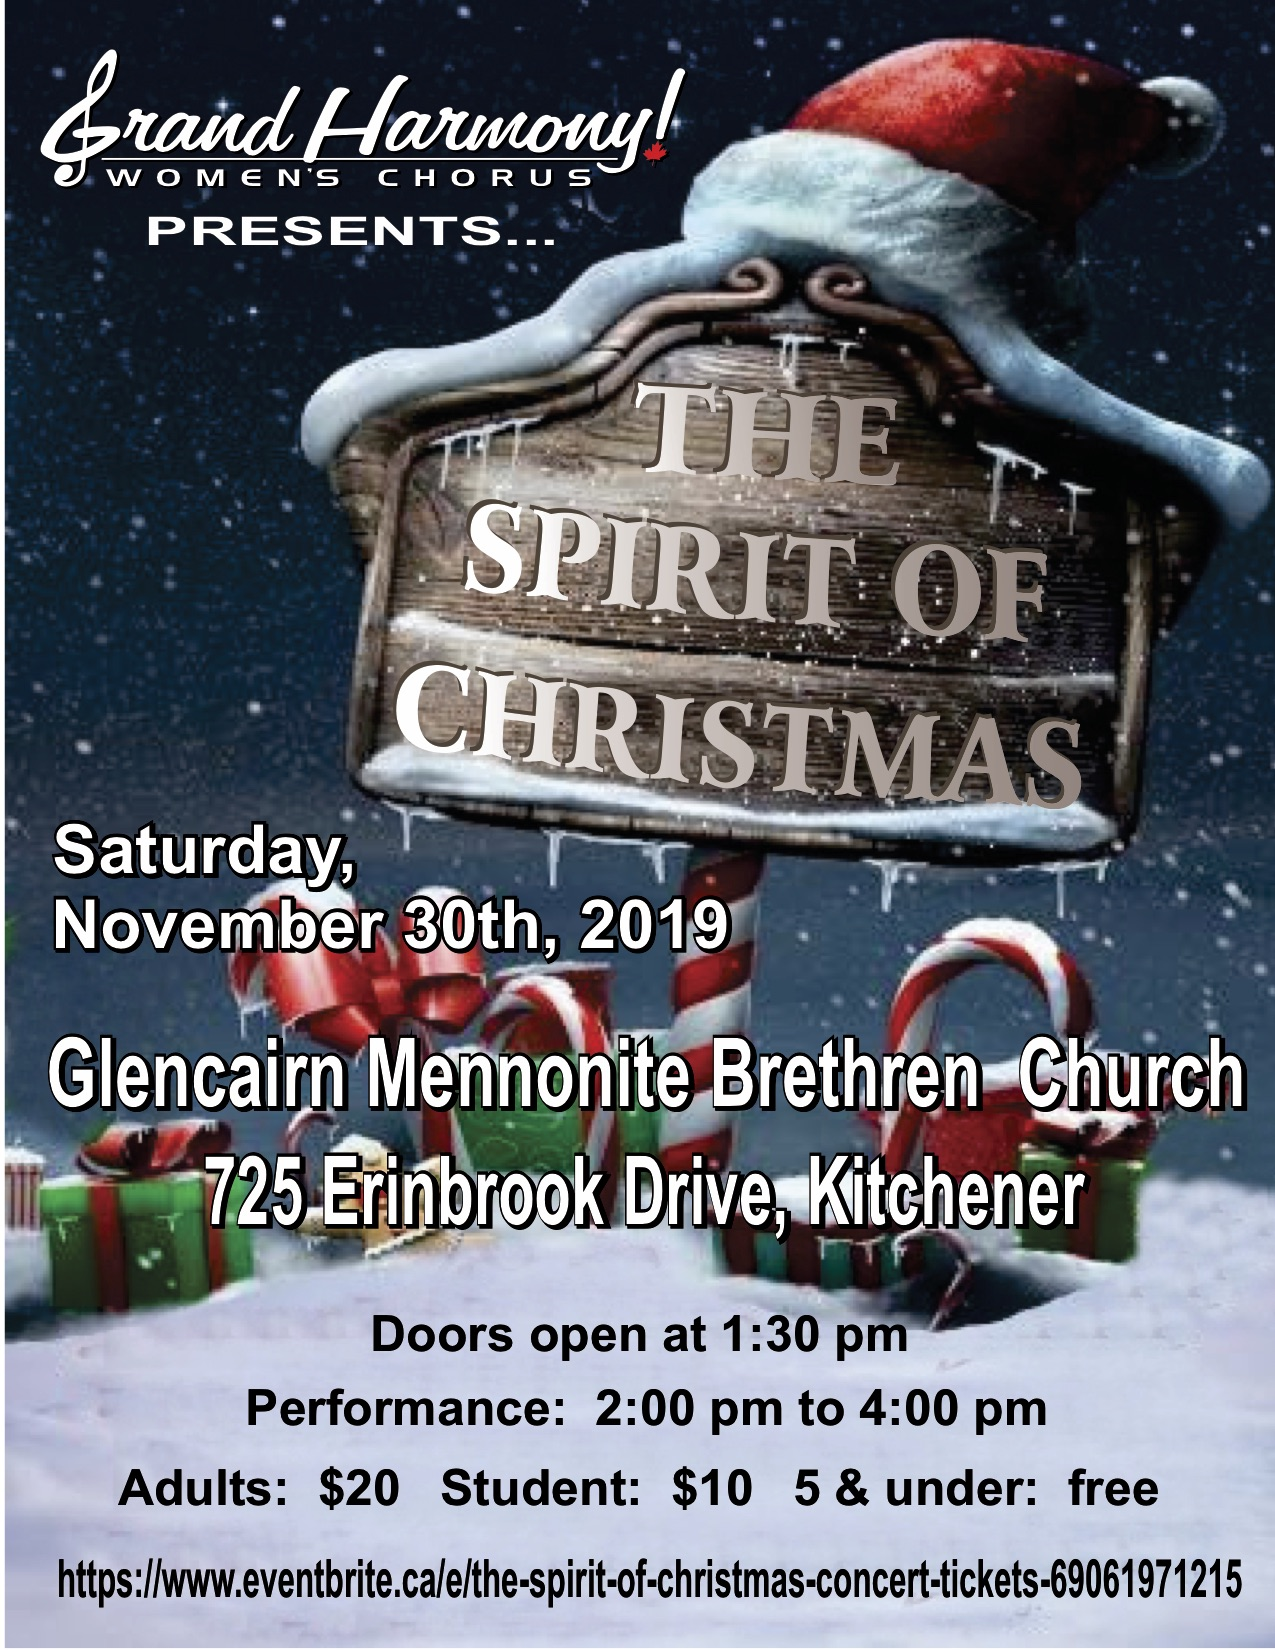 Grand Harmony Spirit of Christmas Concert